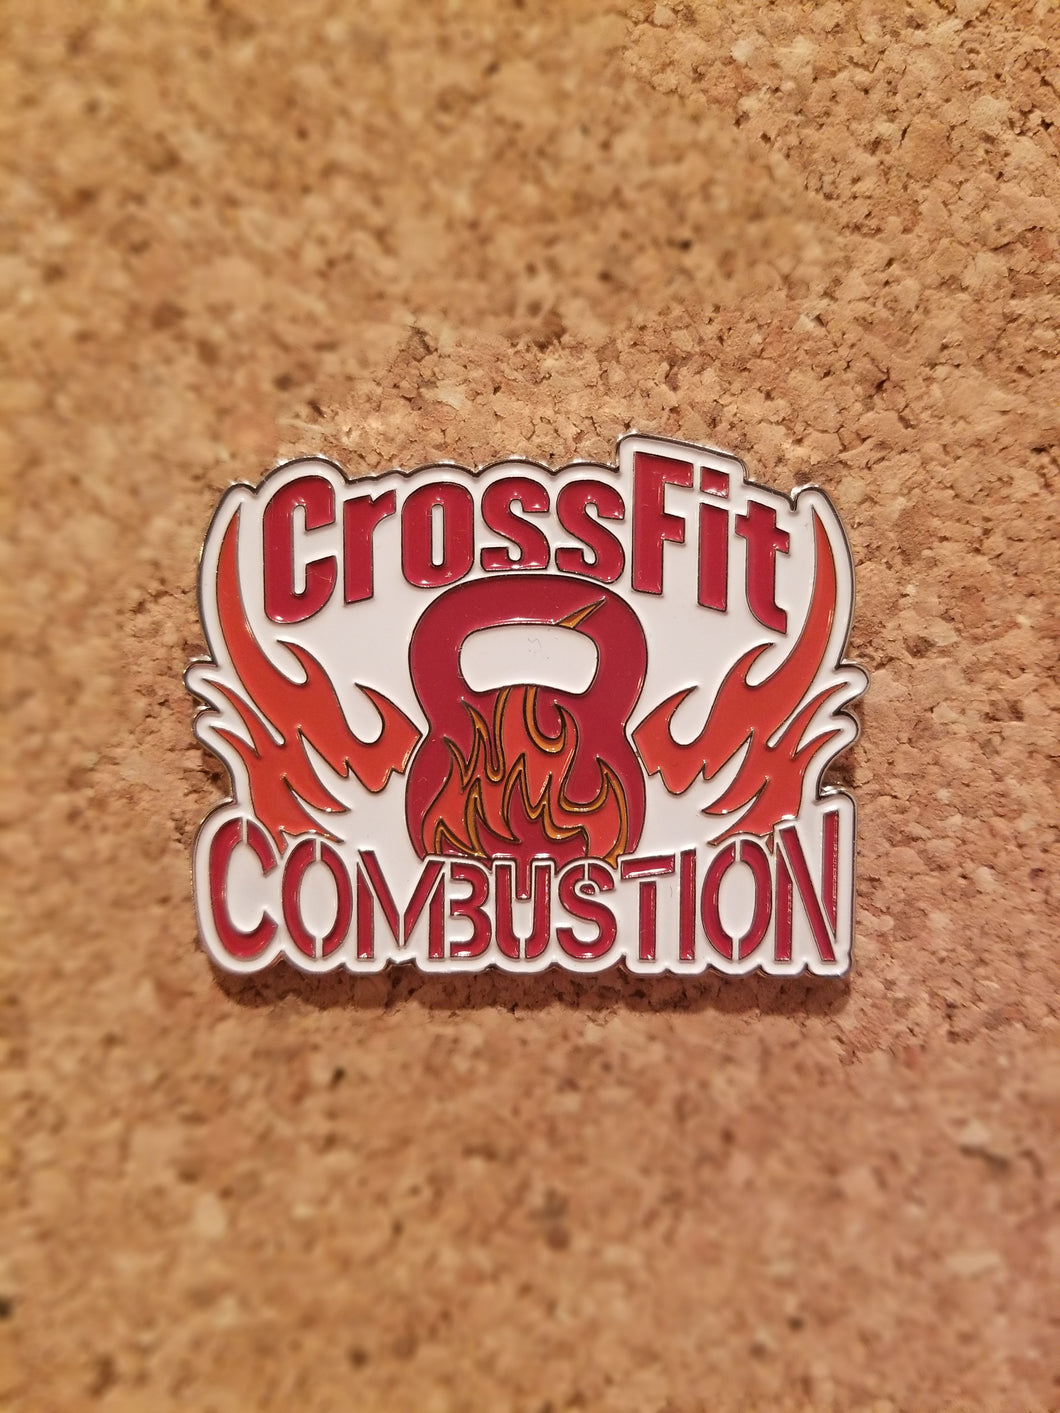 Crossfit Combustion Pin